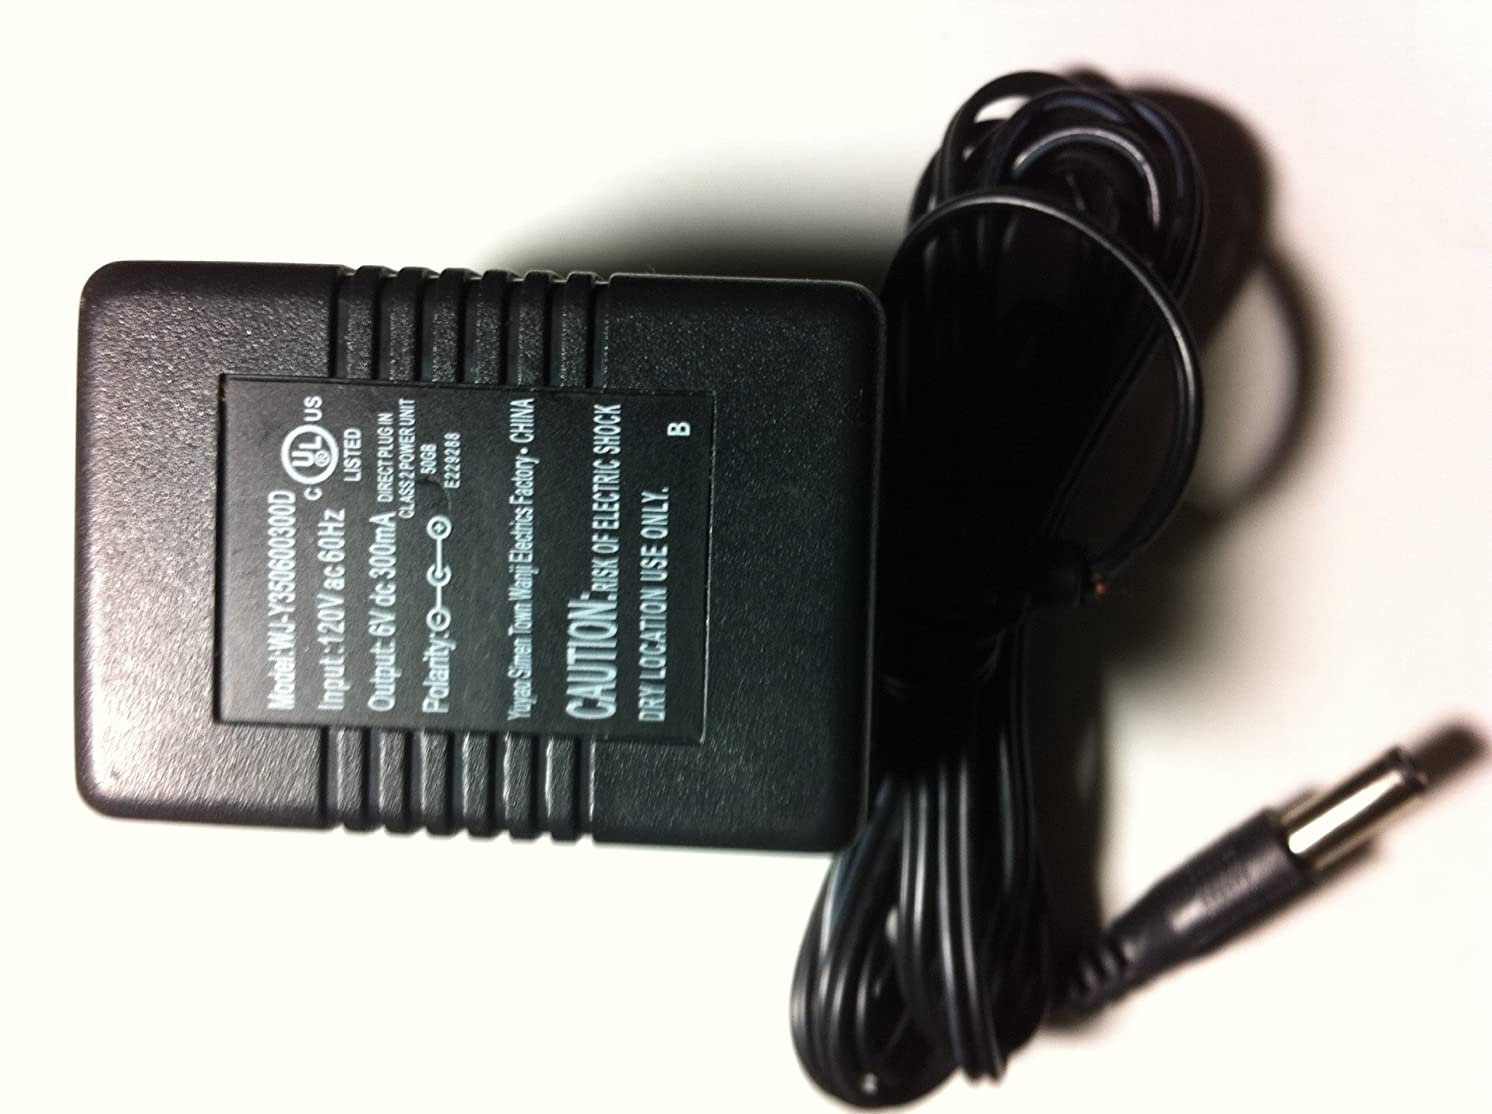 Yuyao Simen AC Adapter Power Supply 6V dc 300mA Model: WJ-Y350600300D